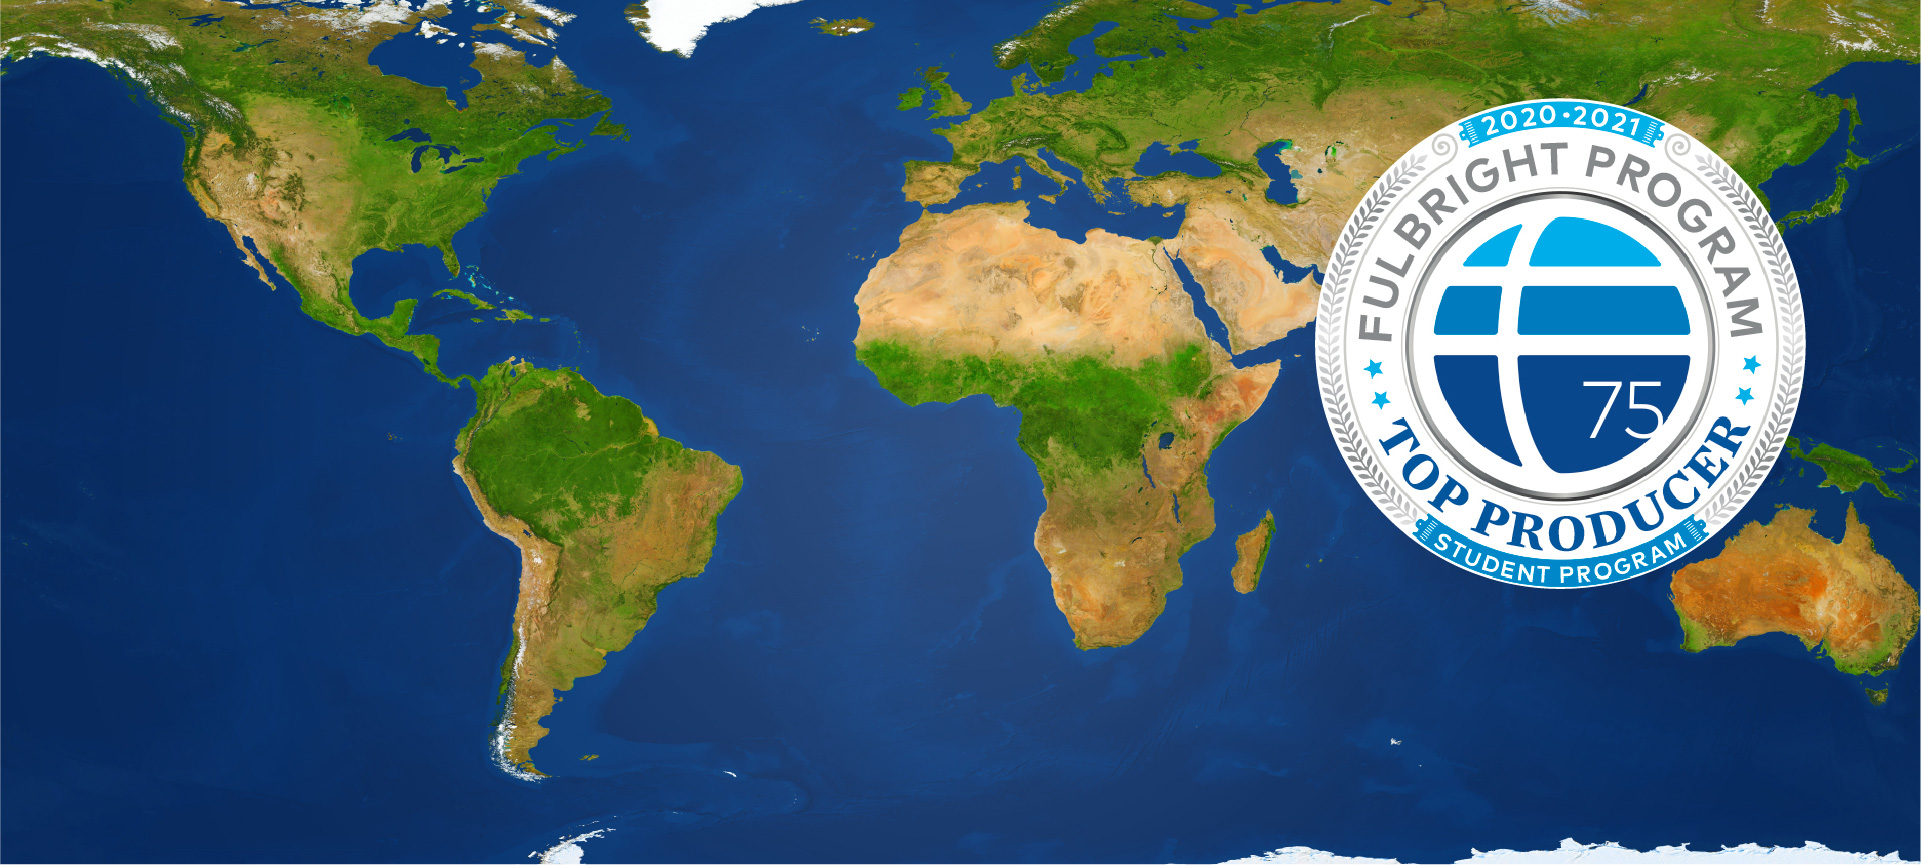 world map with Fulbright icon